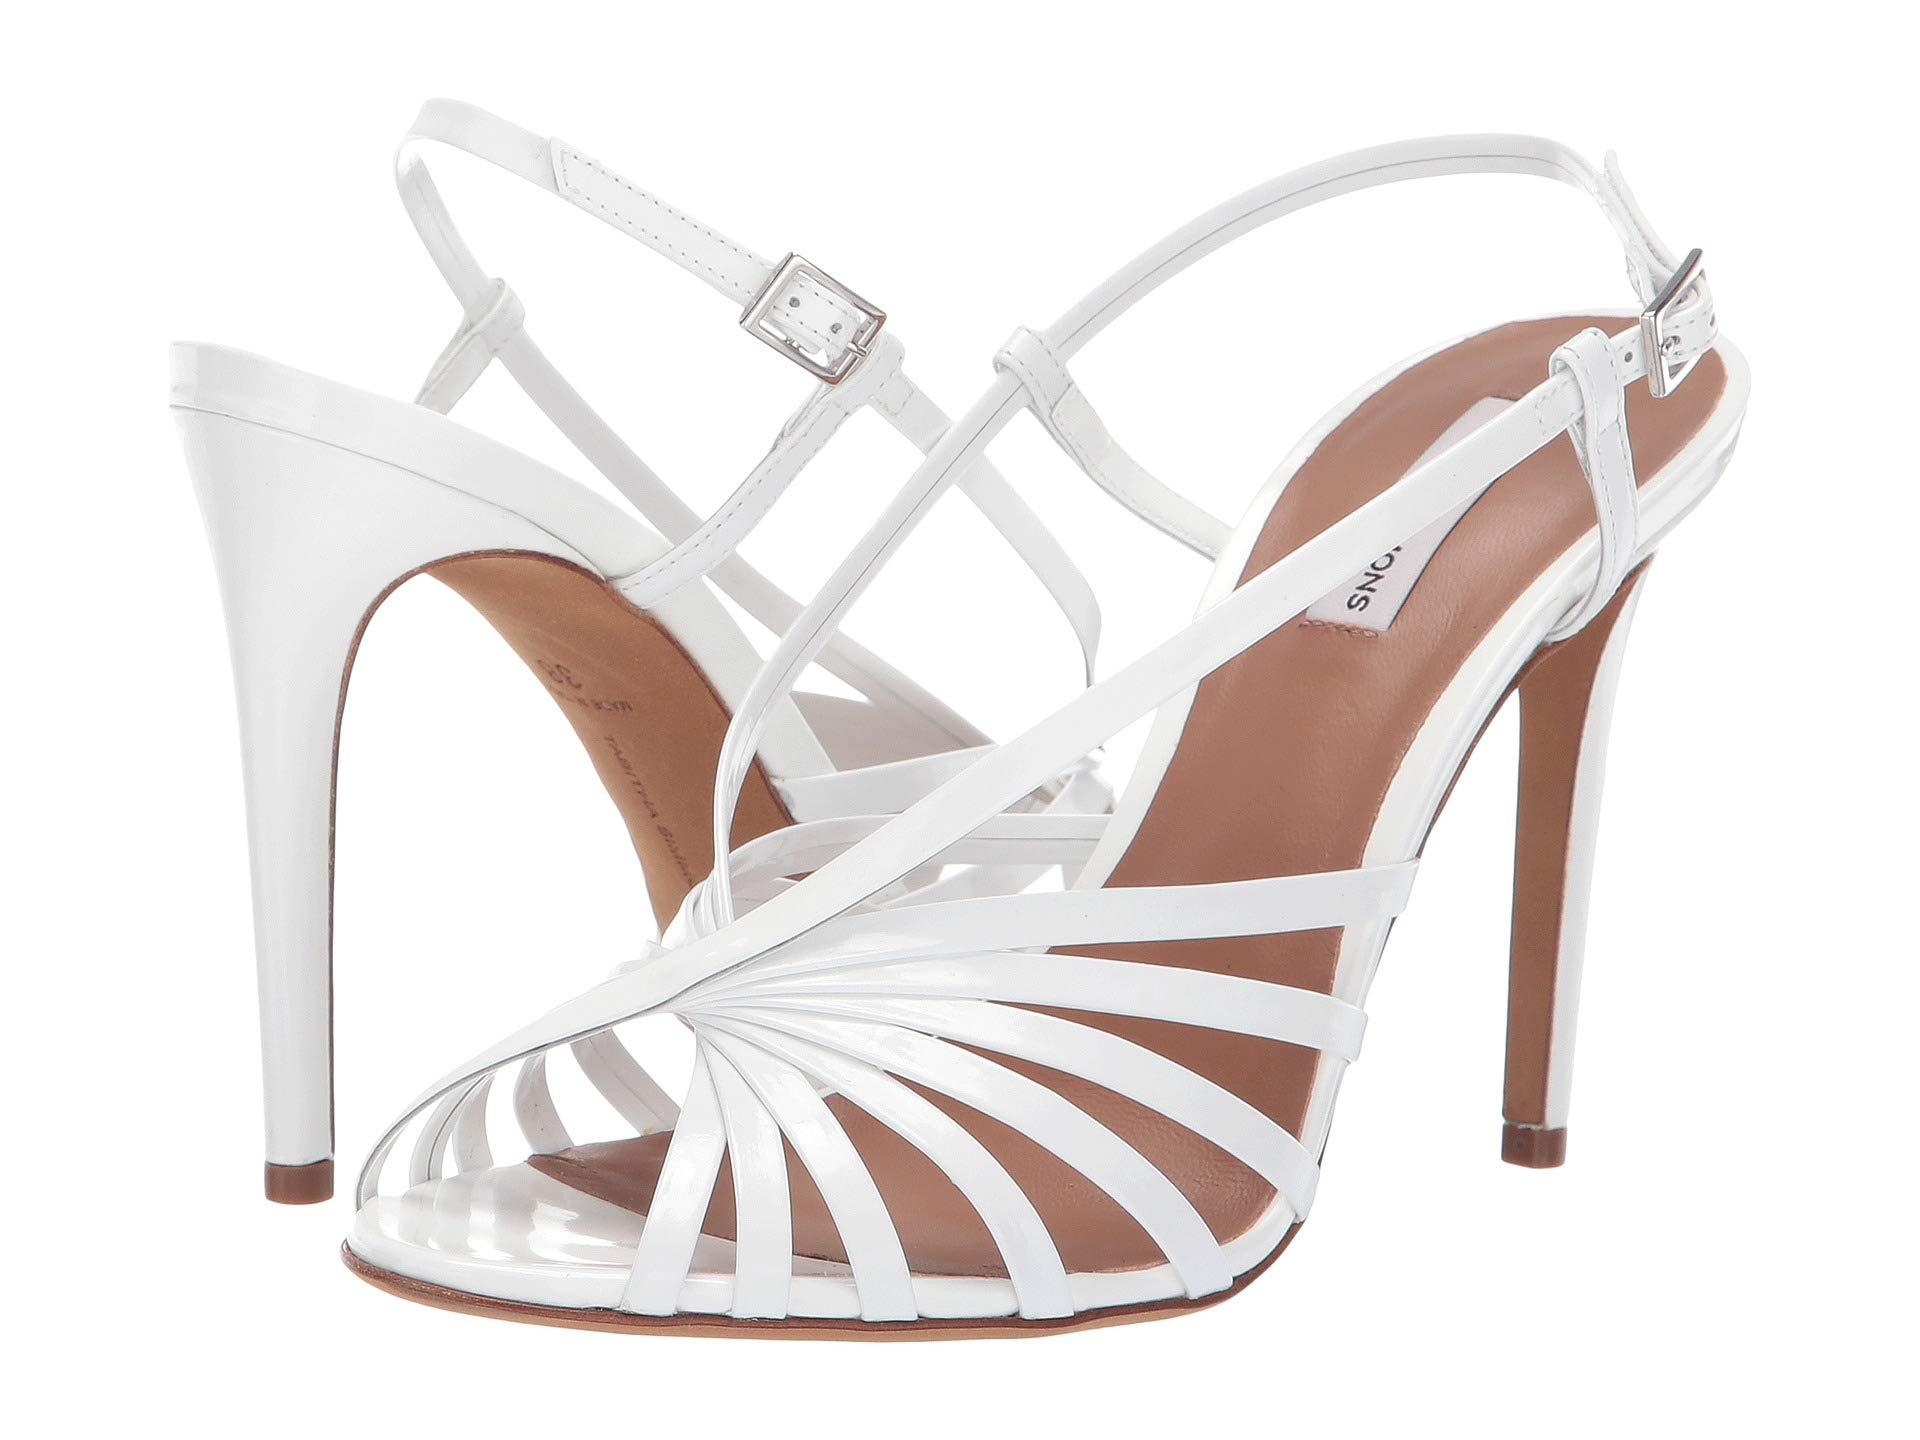 95783dba85 Lyst - Tabitha Simmons Jazz Sandals in White